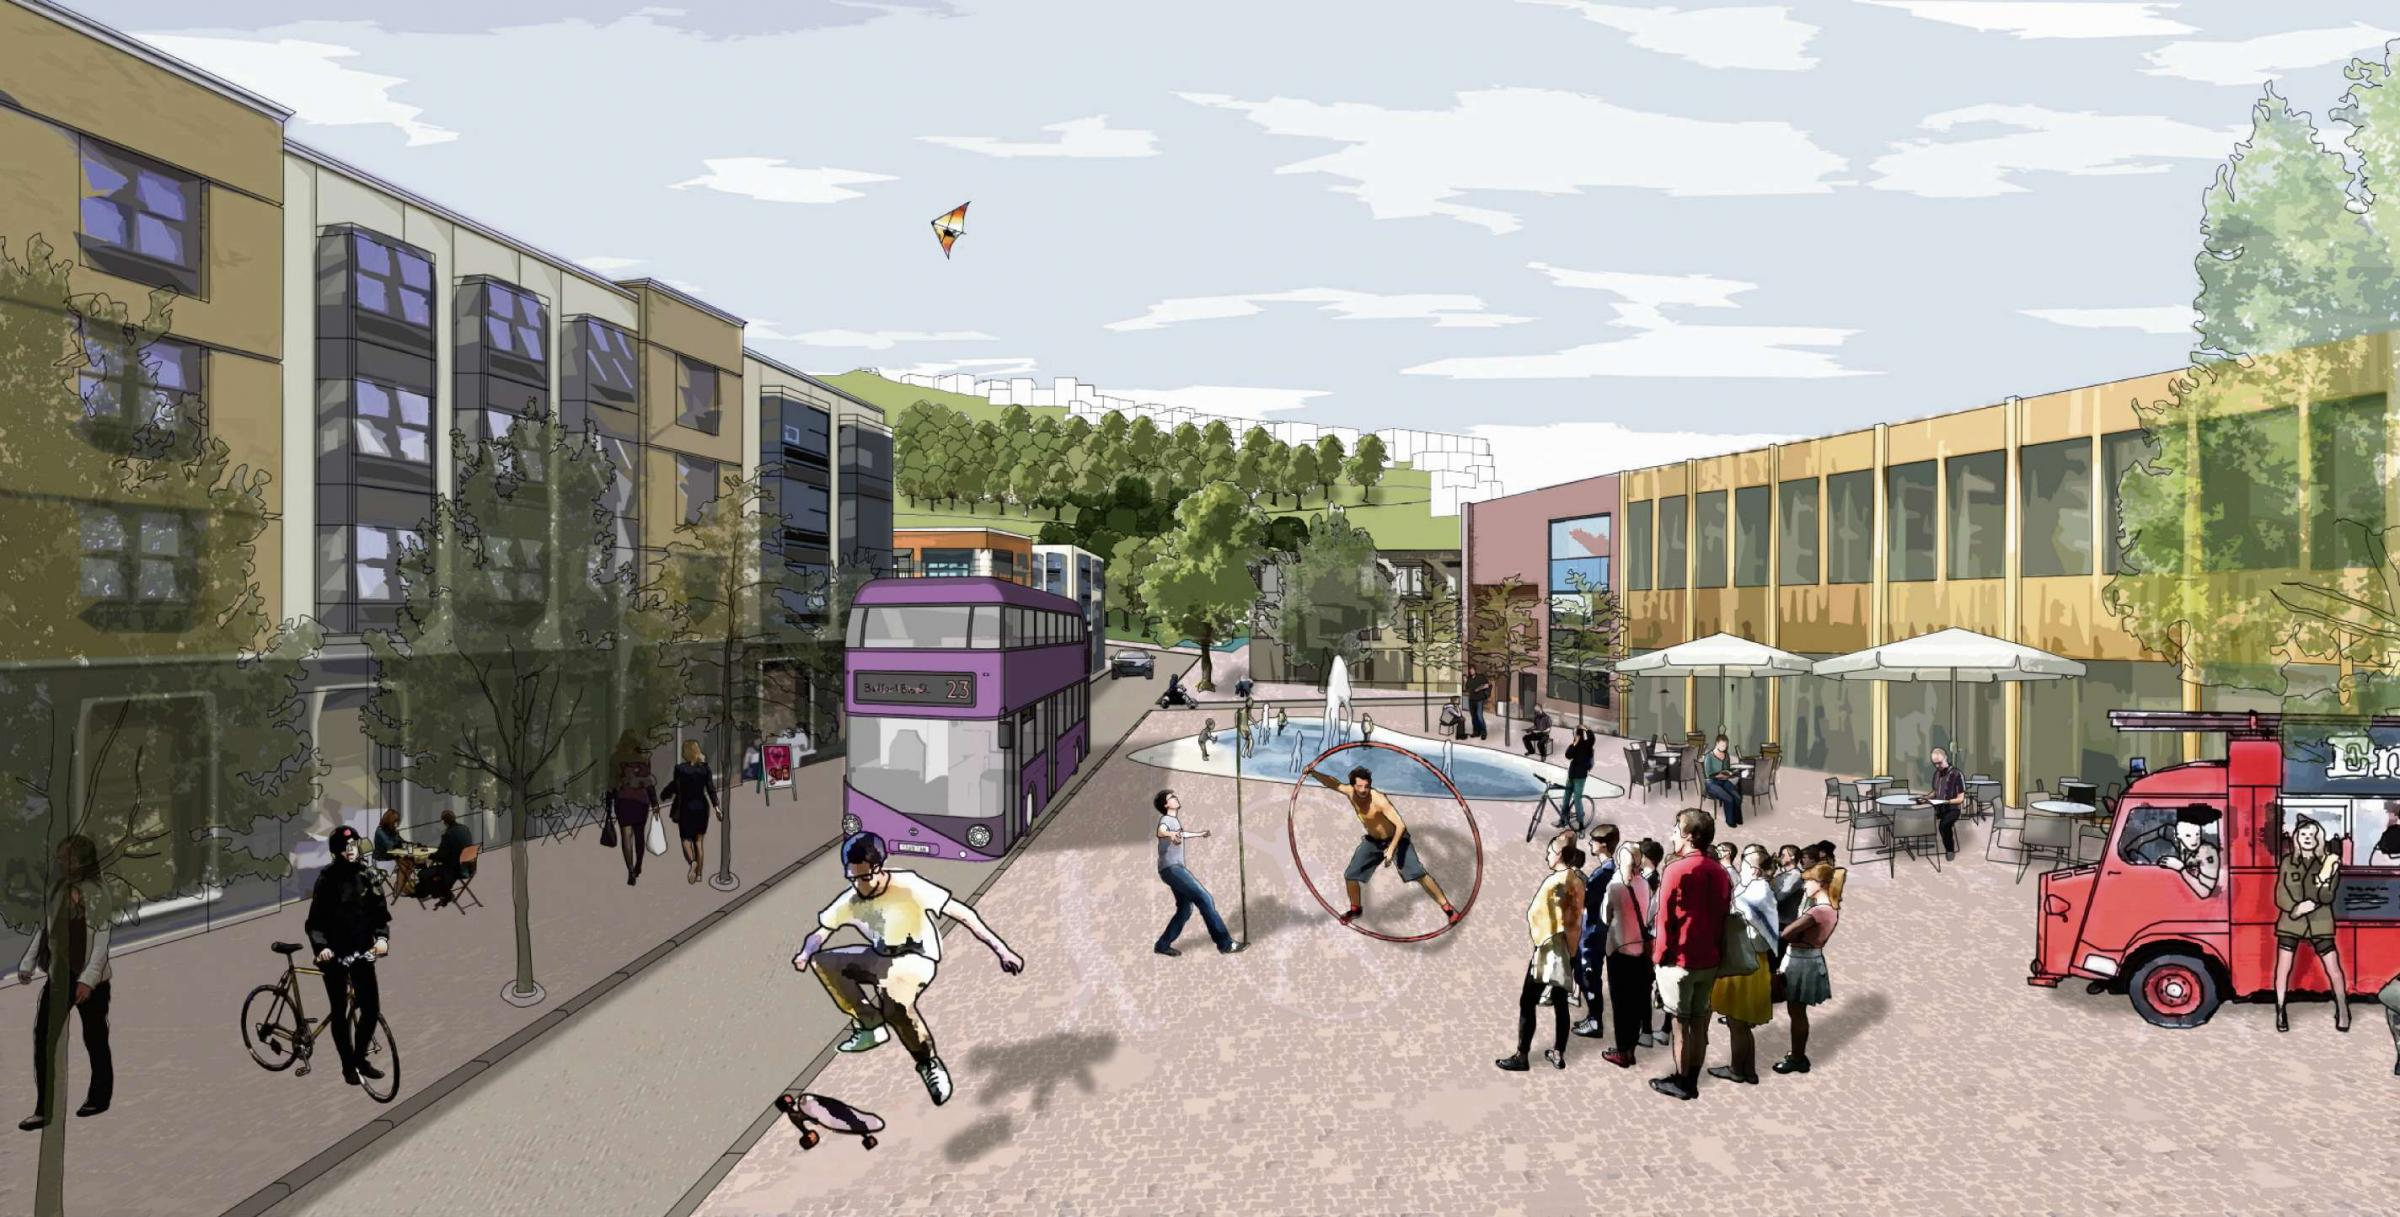 Plans for £250m Bradford eco-village go on display